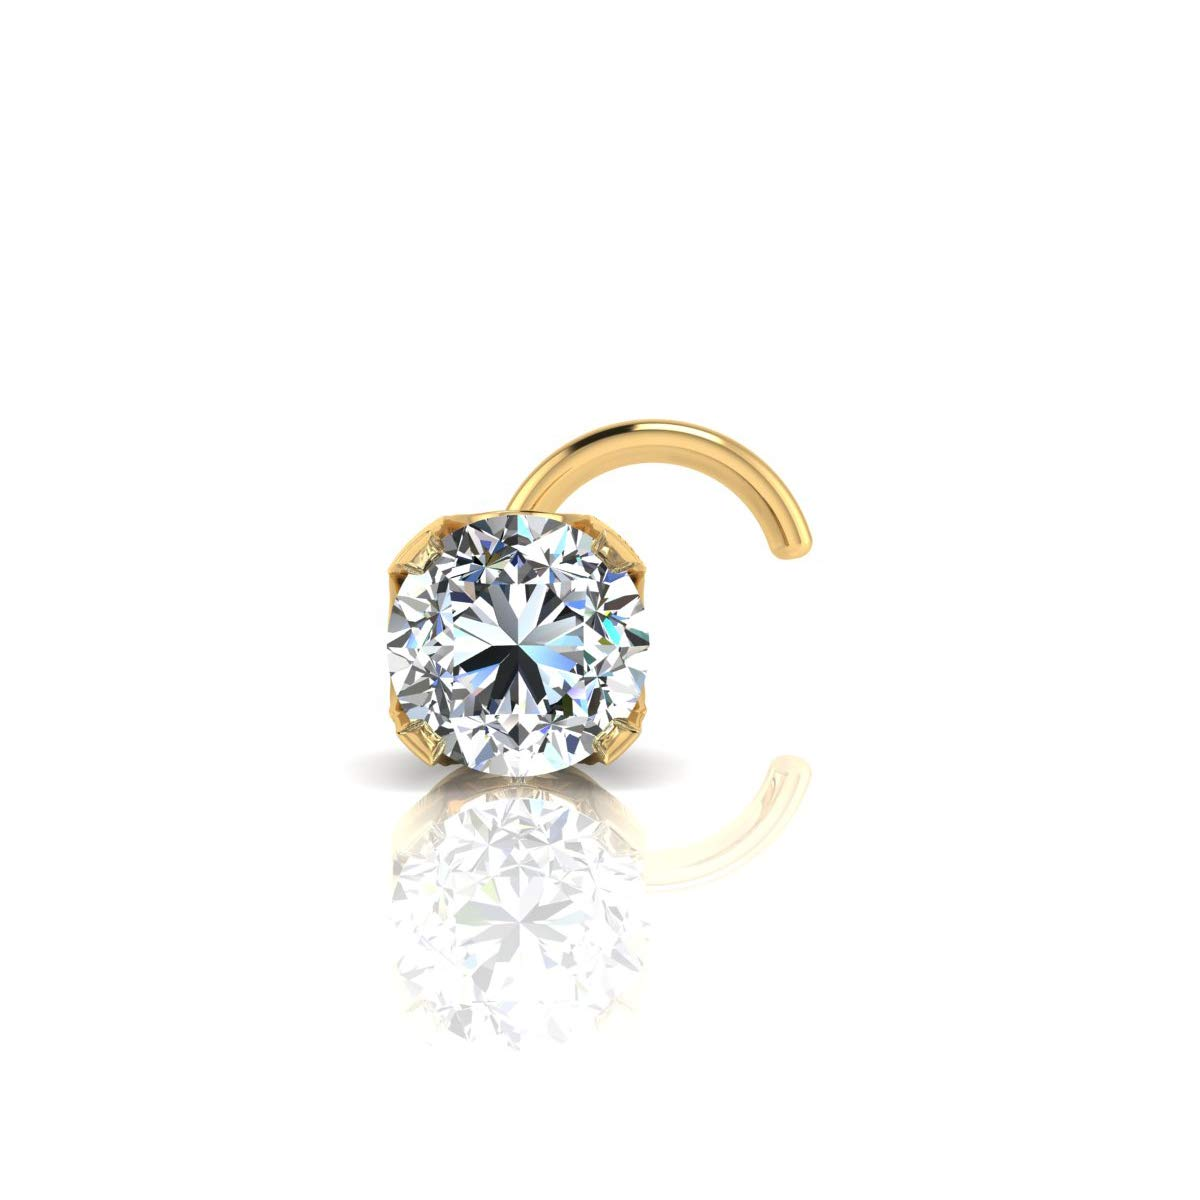 1.5mm 0.015 Carat Diamond Stud Nose Ring Available In 14K White and 14K Yellow Gold Sparkle Bargains SB011601-NWLB 14Y